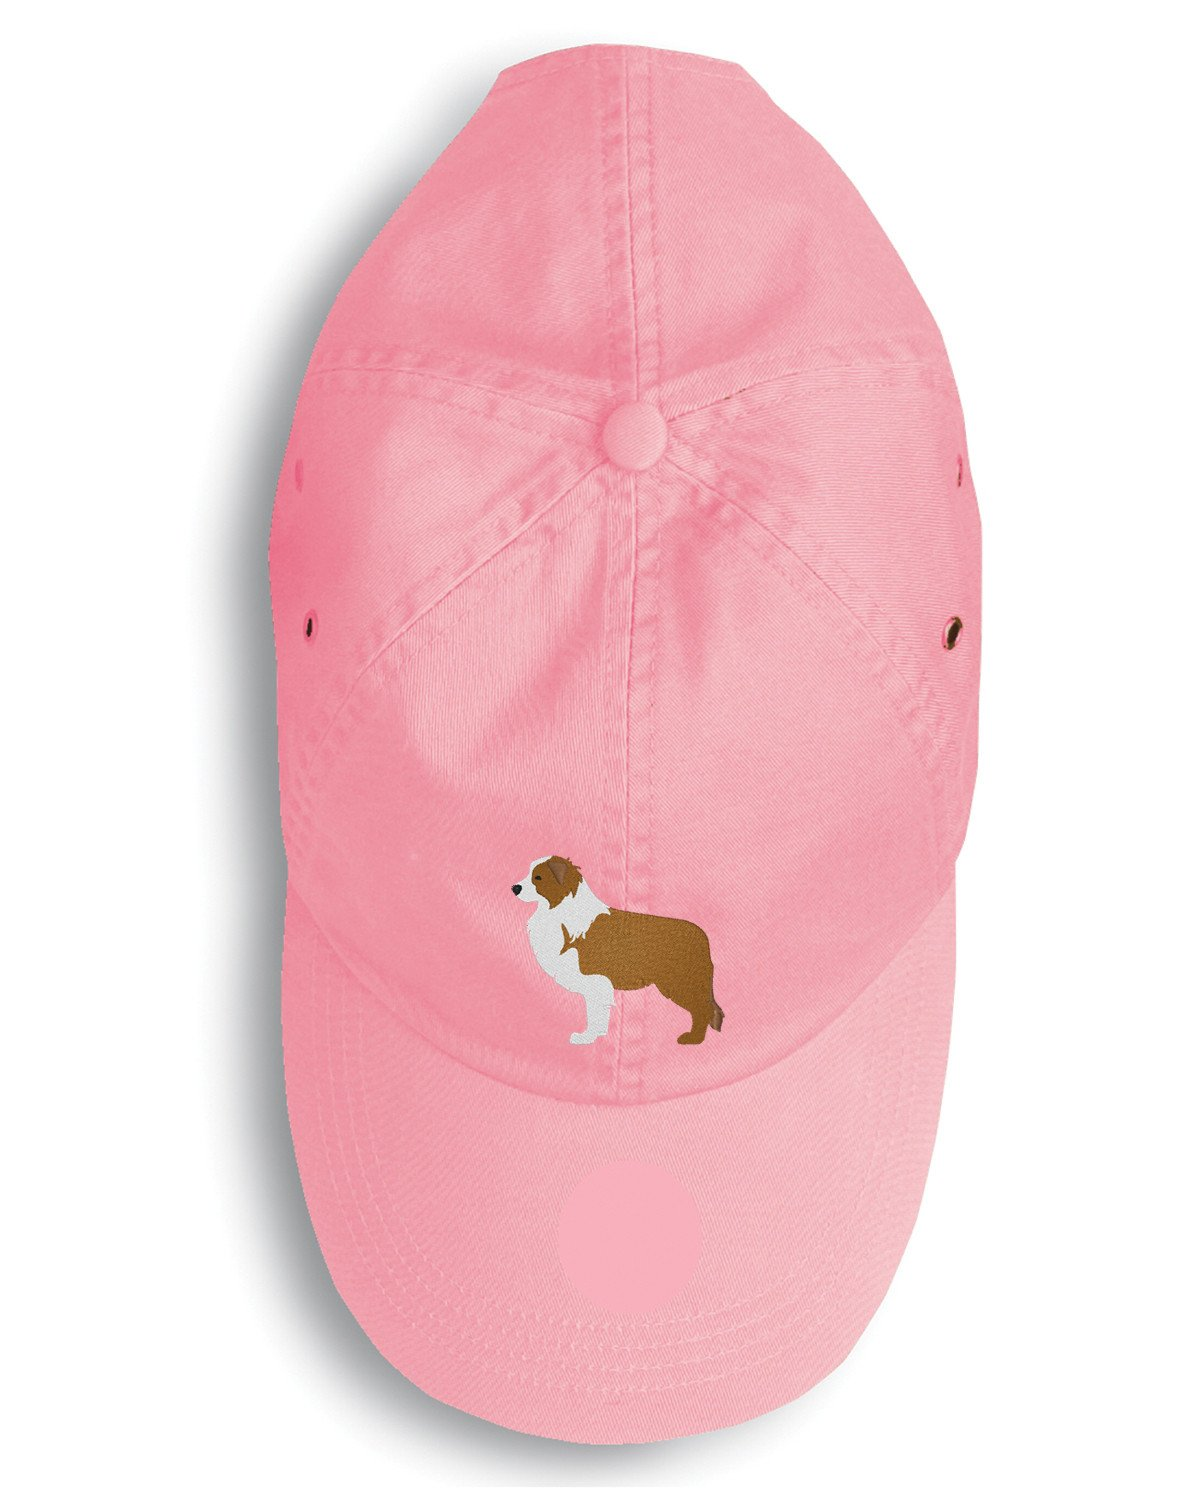 Red Border Collie Embroidered Baseball Cap BB3422PK-156 by Caroline's Treasures